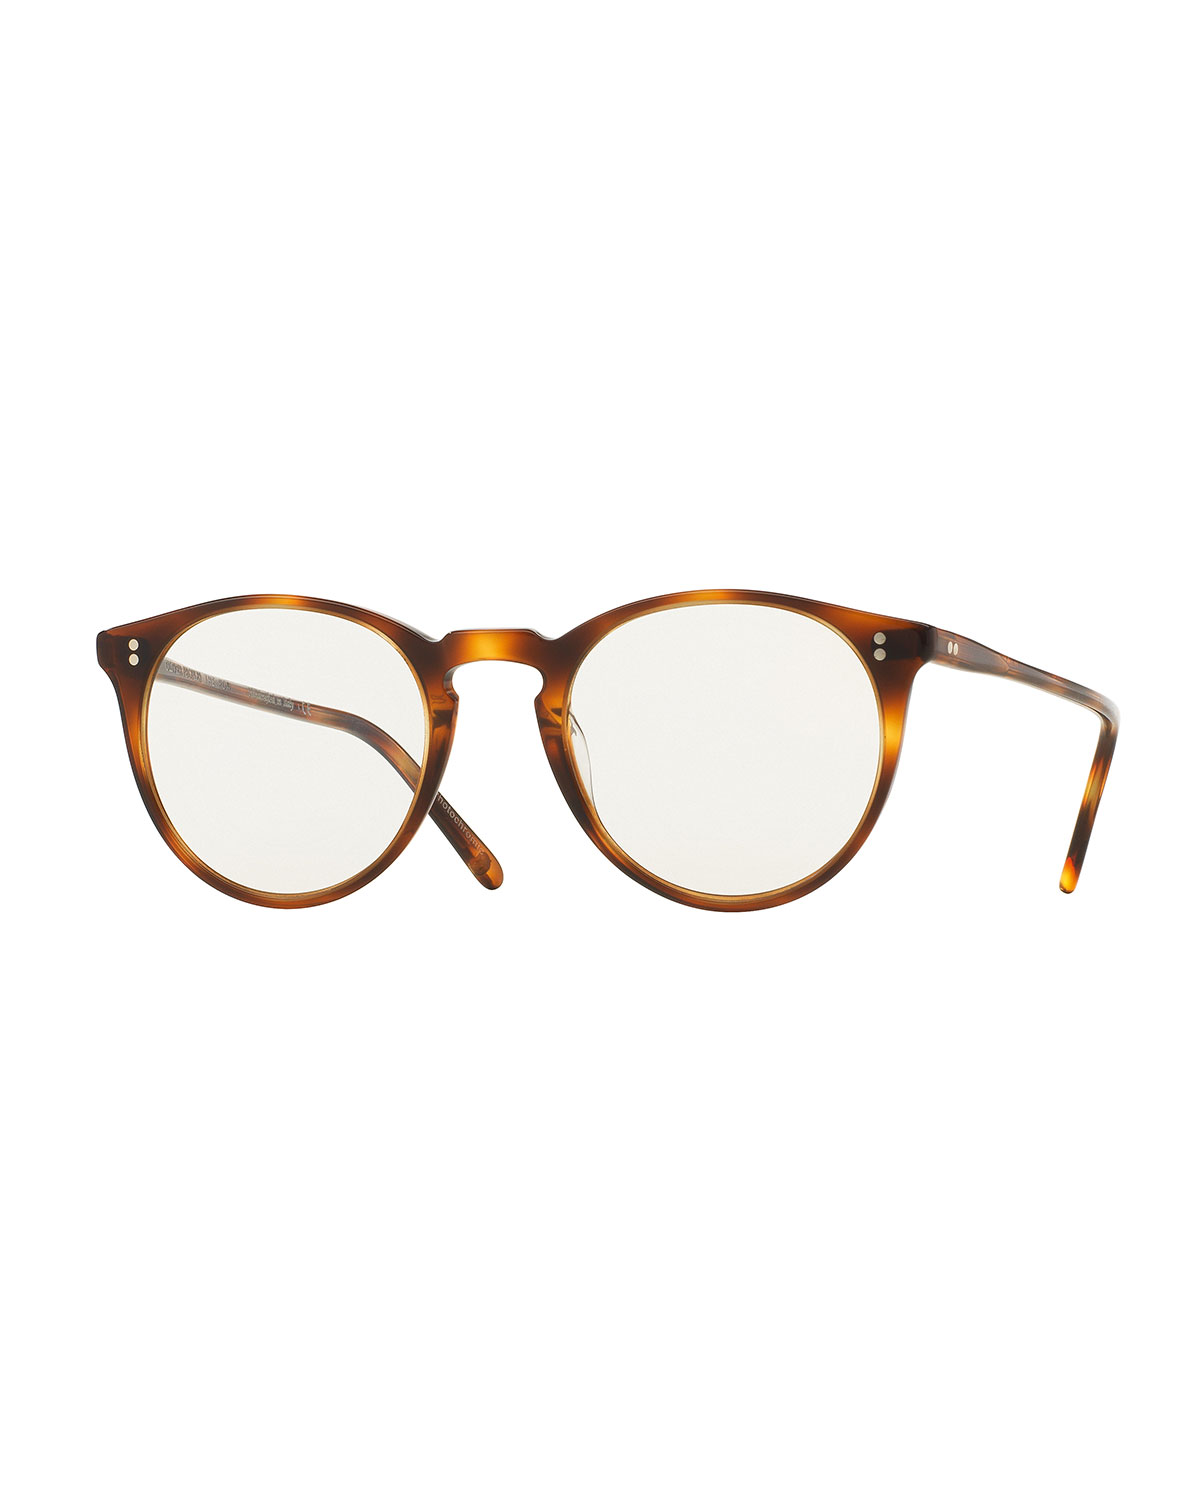 8576333a472 Oliver Peoples O Malley NYC Peaked Round Photochromic Sunglasses ...